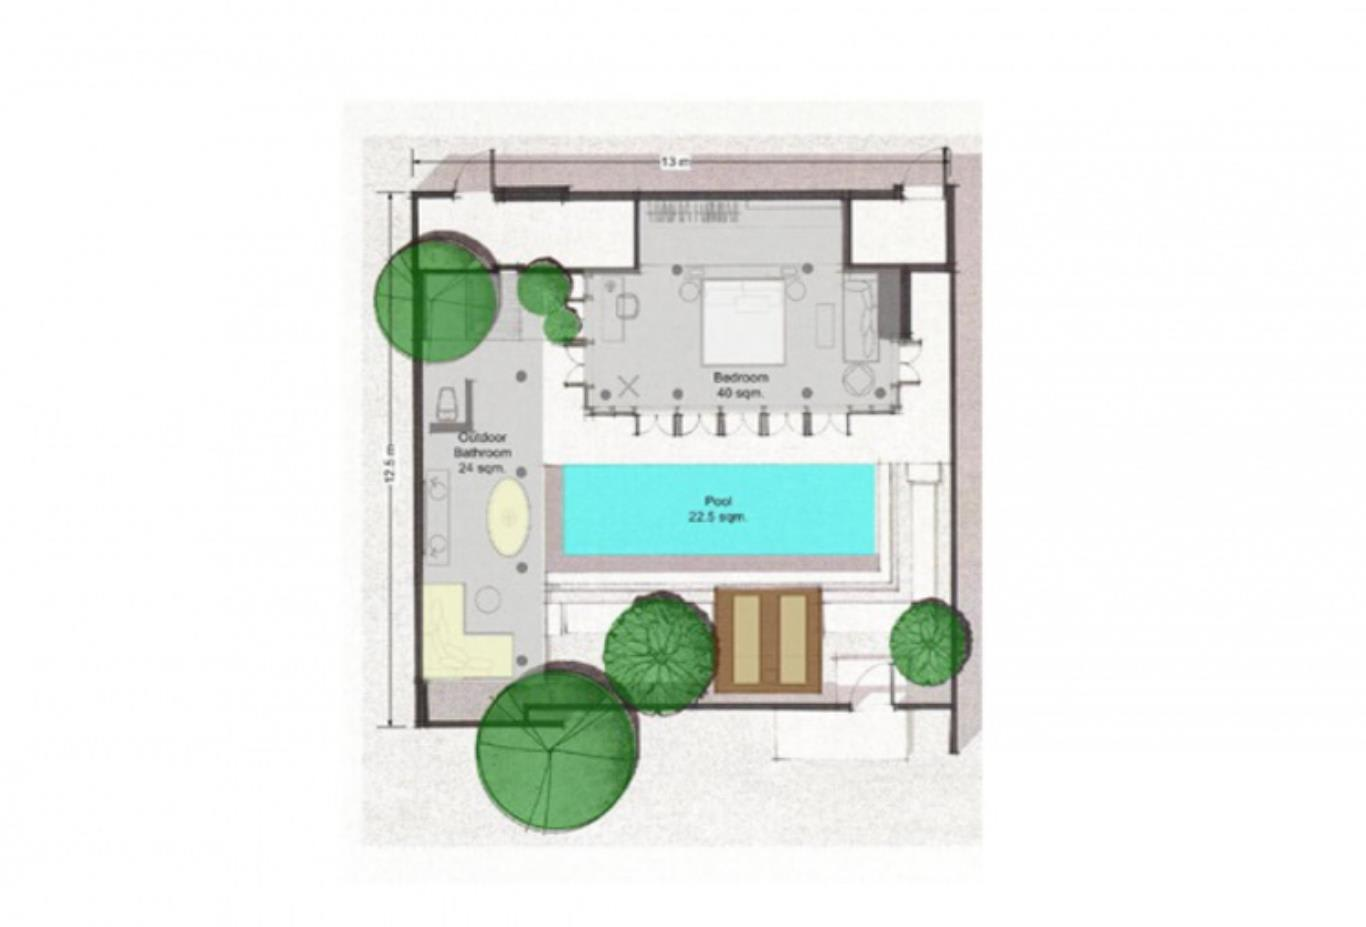 Sala pool villa floorplan